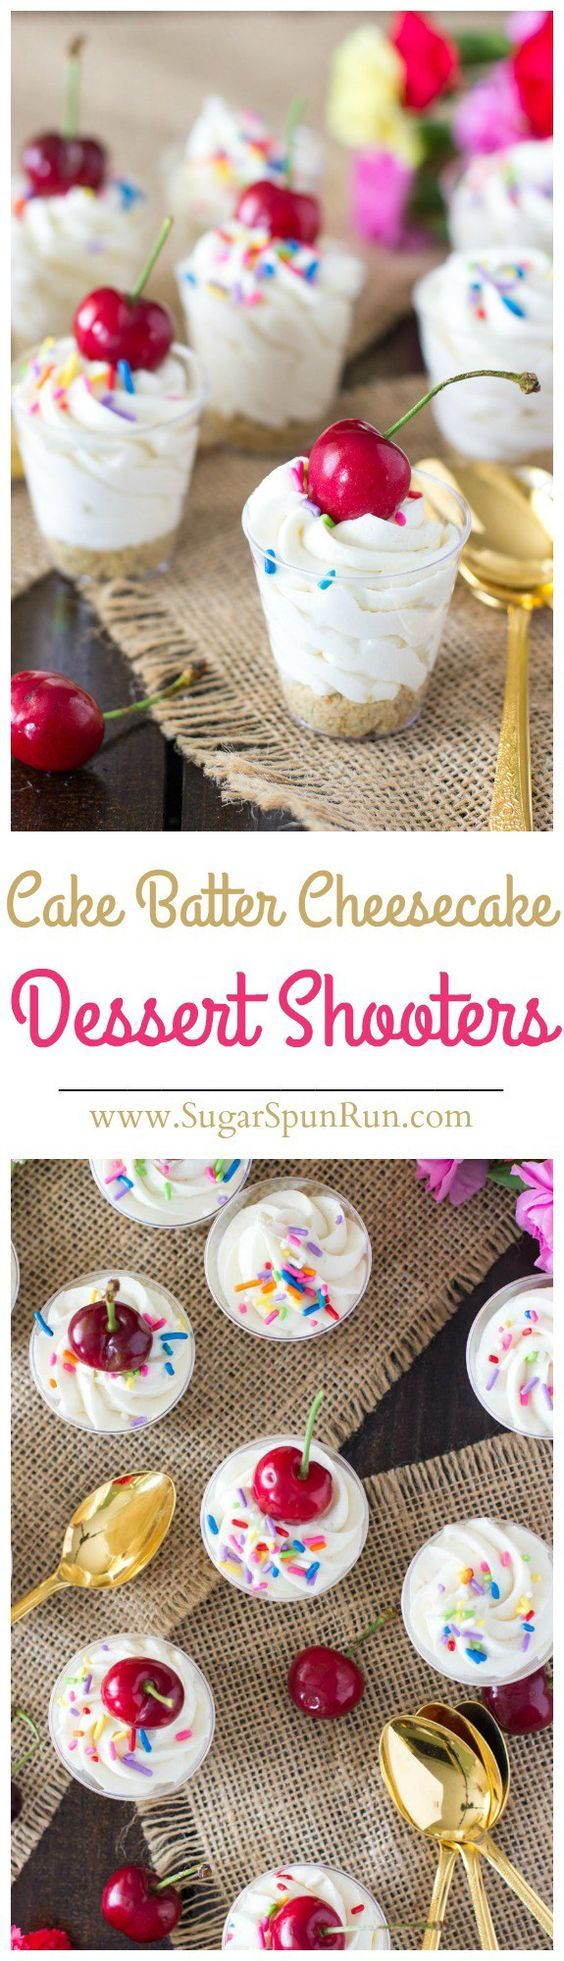 Cake Batter Cheesecake Dessert Shooters -- These things are INSANELY good! via SugarSpunRun.com: